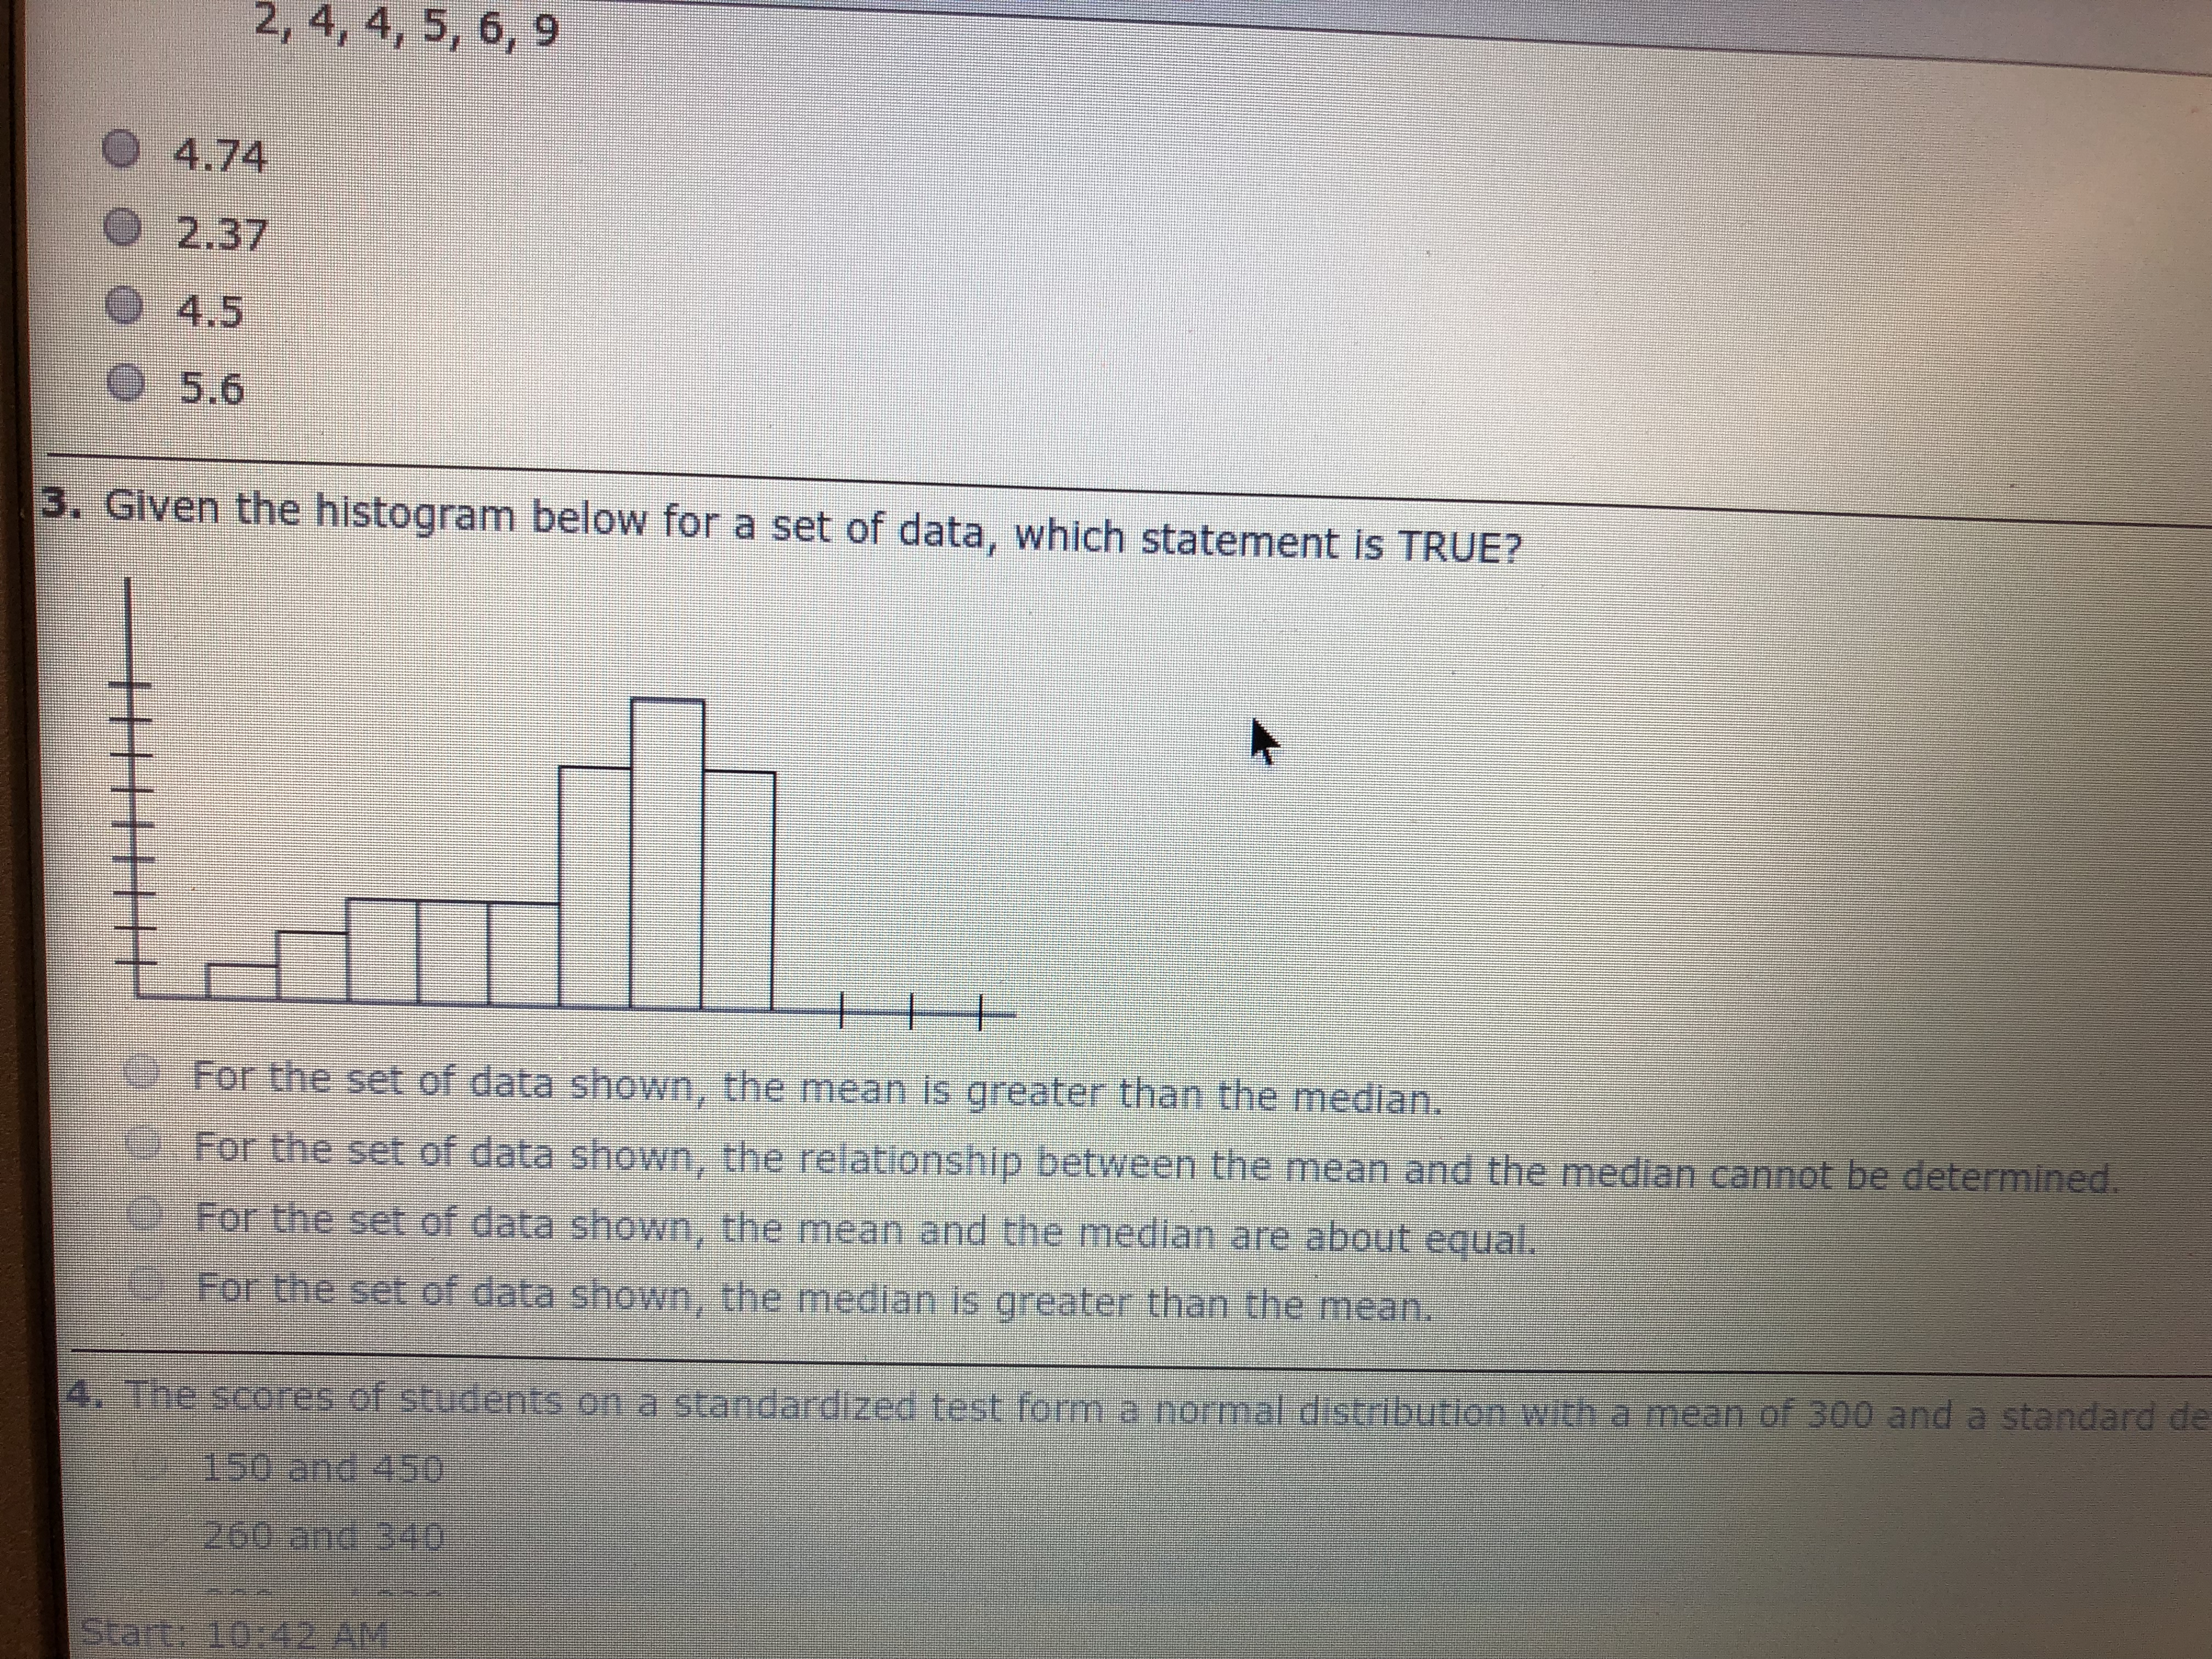 2, 4, 4, 5, 6, 9 O 4.74 O2.37 O 4.5 O5.6 3. Given the histogram below for a set of data, which statement is TRUE? For the set of data shown, the mean is greater than the median. For the set of data shown, the relationship between the mean and the median cannot be determined. For the set of data shown, the mean and the median are about equal. For the set of data shown, the median is greater than the mean. mean of 300 and a standard de The scores.of students on a standardized test fom.e normal d'stribution with a 150 and 450 260 and 340 Start: 10:42 AM